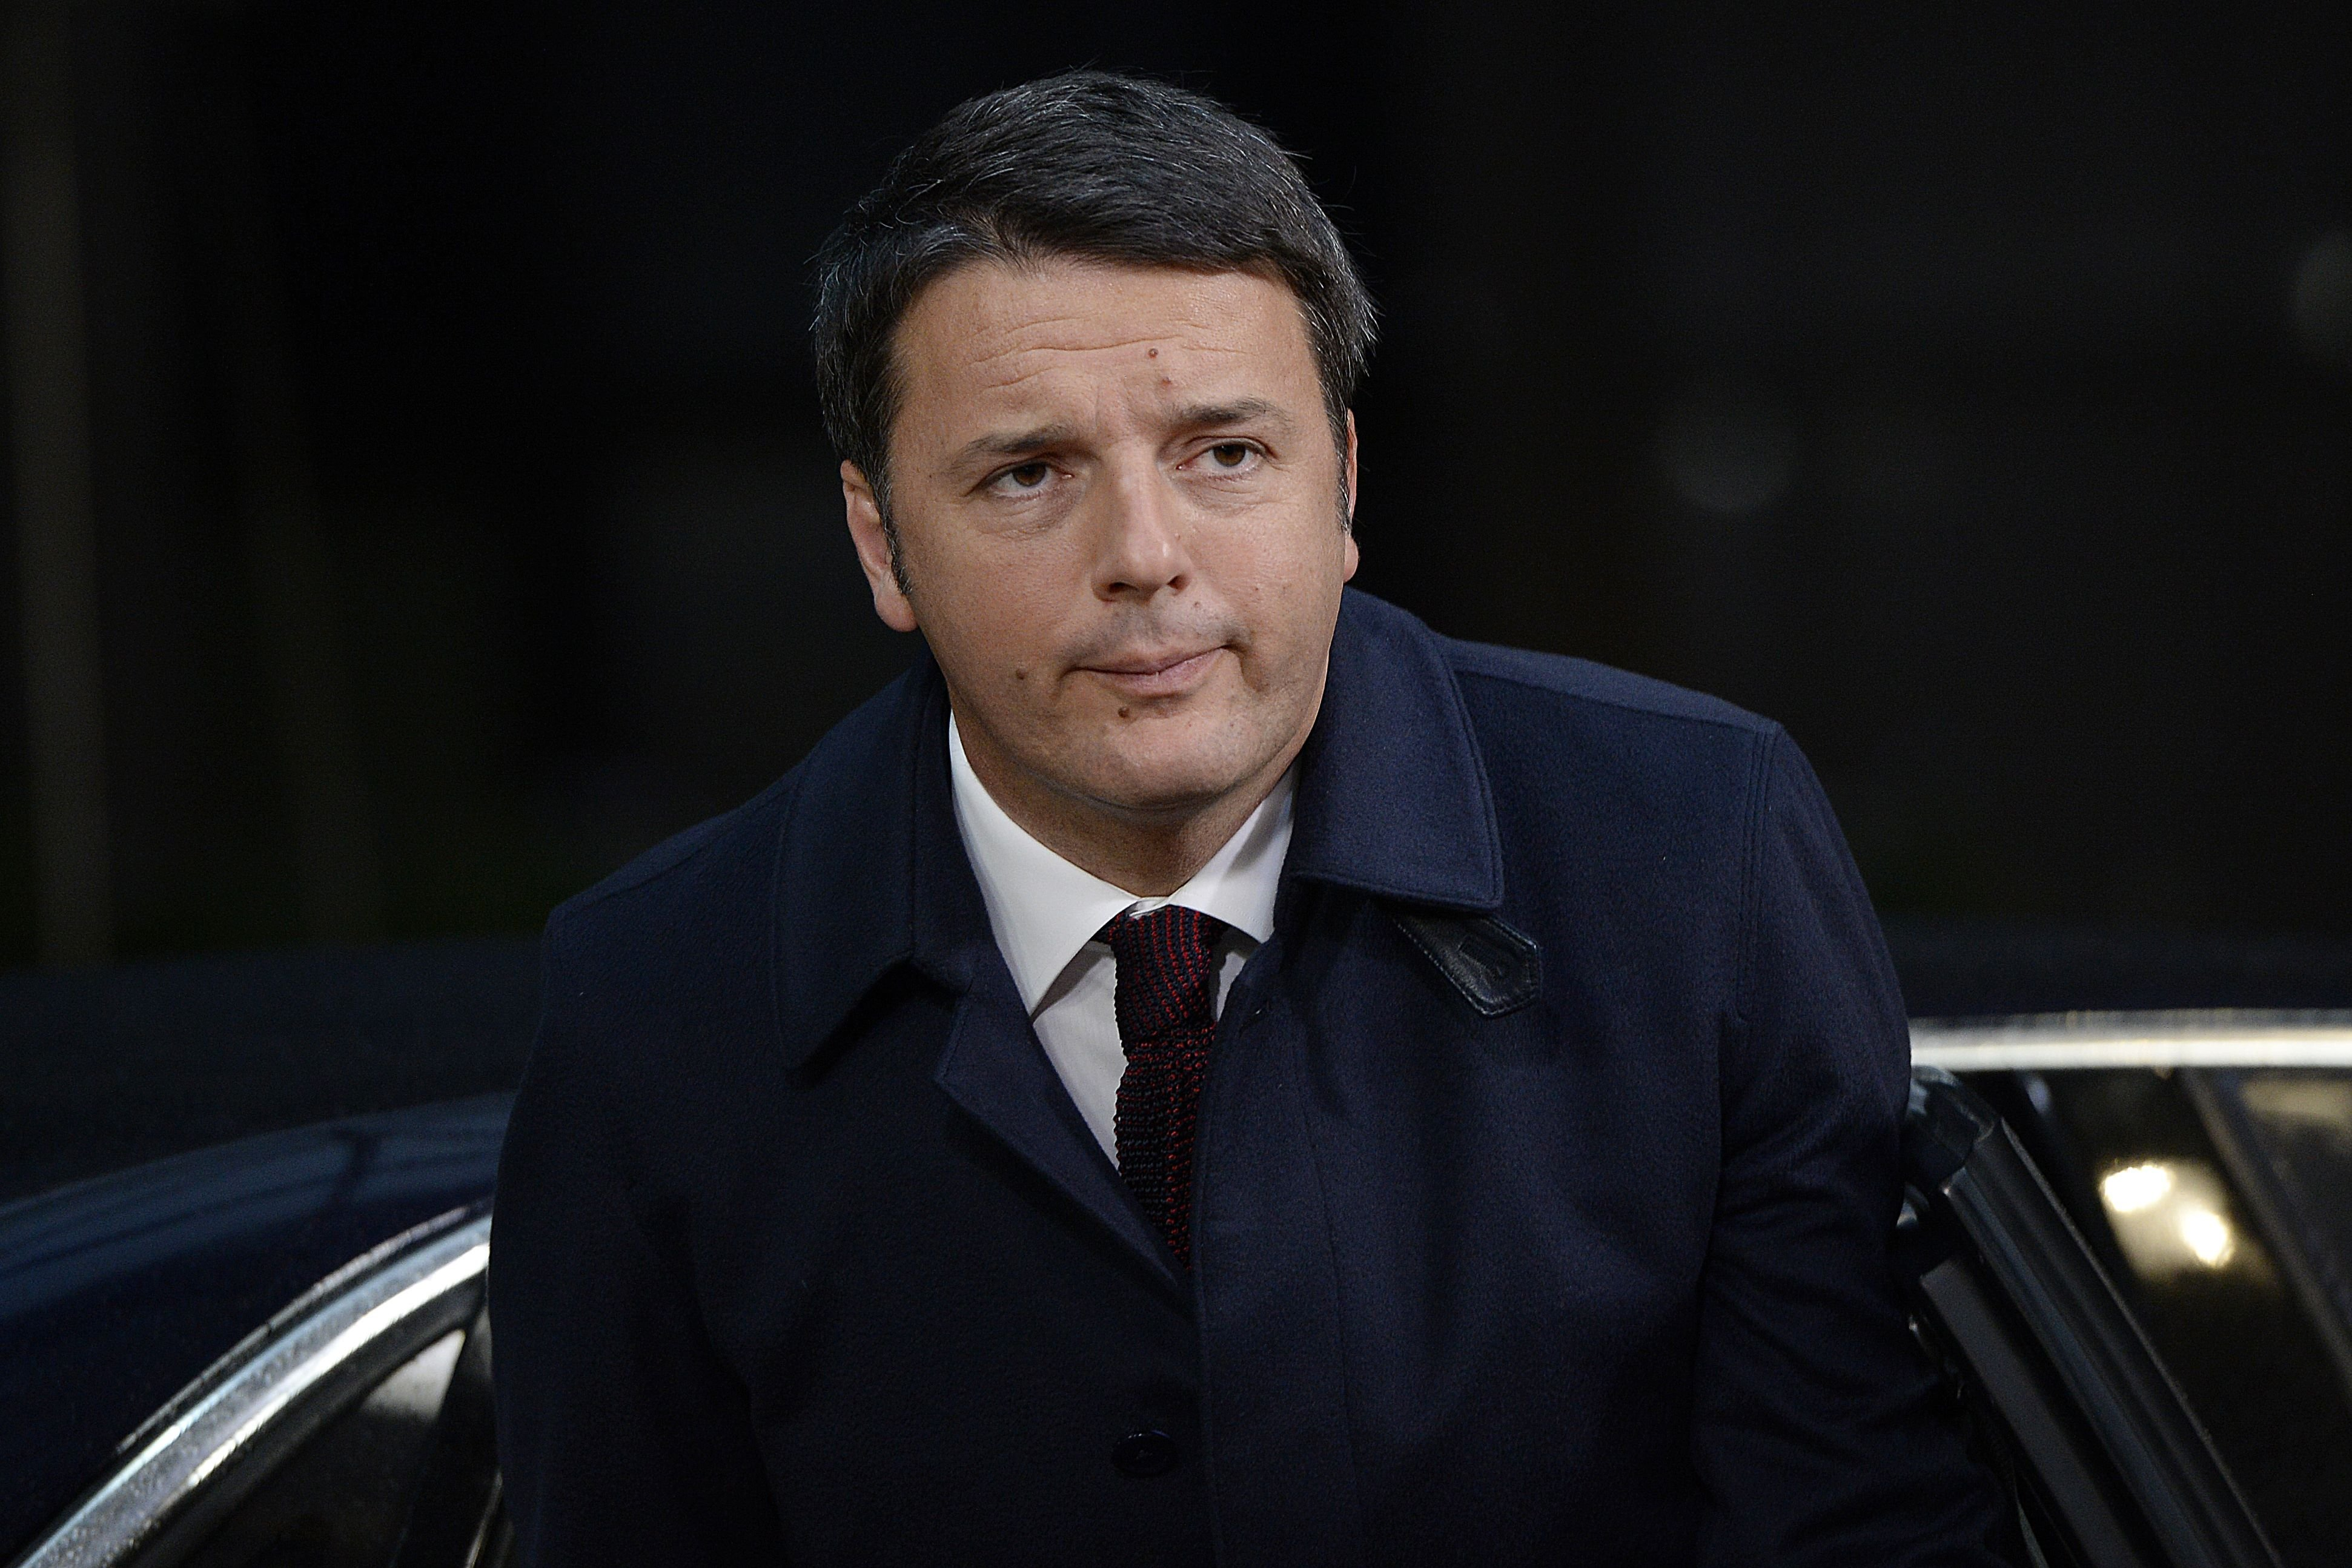 Italy's Prime minister Matteo Renzi at the EU headquarters in Brussels on Nov. 29, 2015.